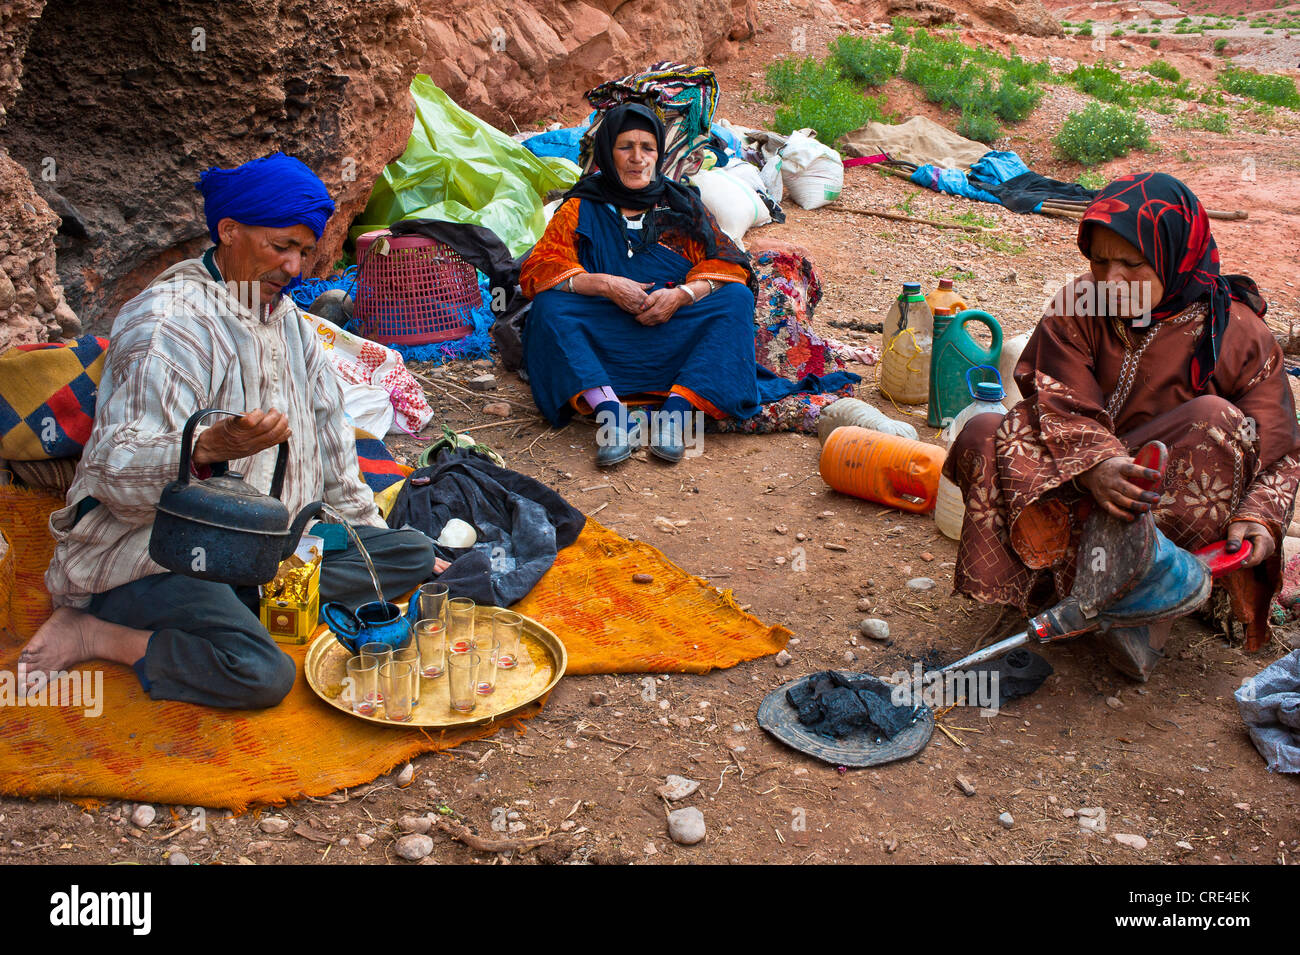 Nomadic cave-dwellers, Berber, a man wearing a blue turban is pouring a cup of tea, a woman is using bellows to - Stock Image